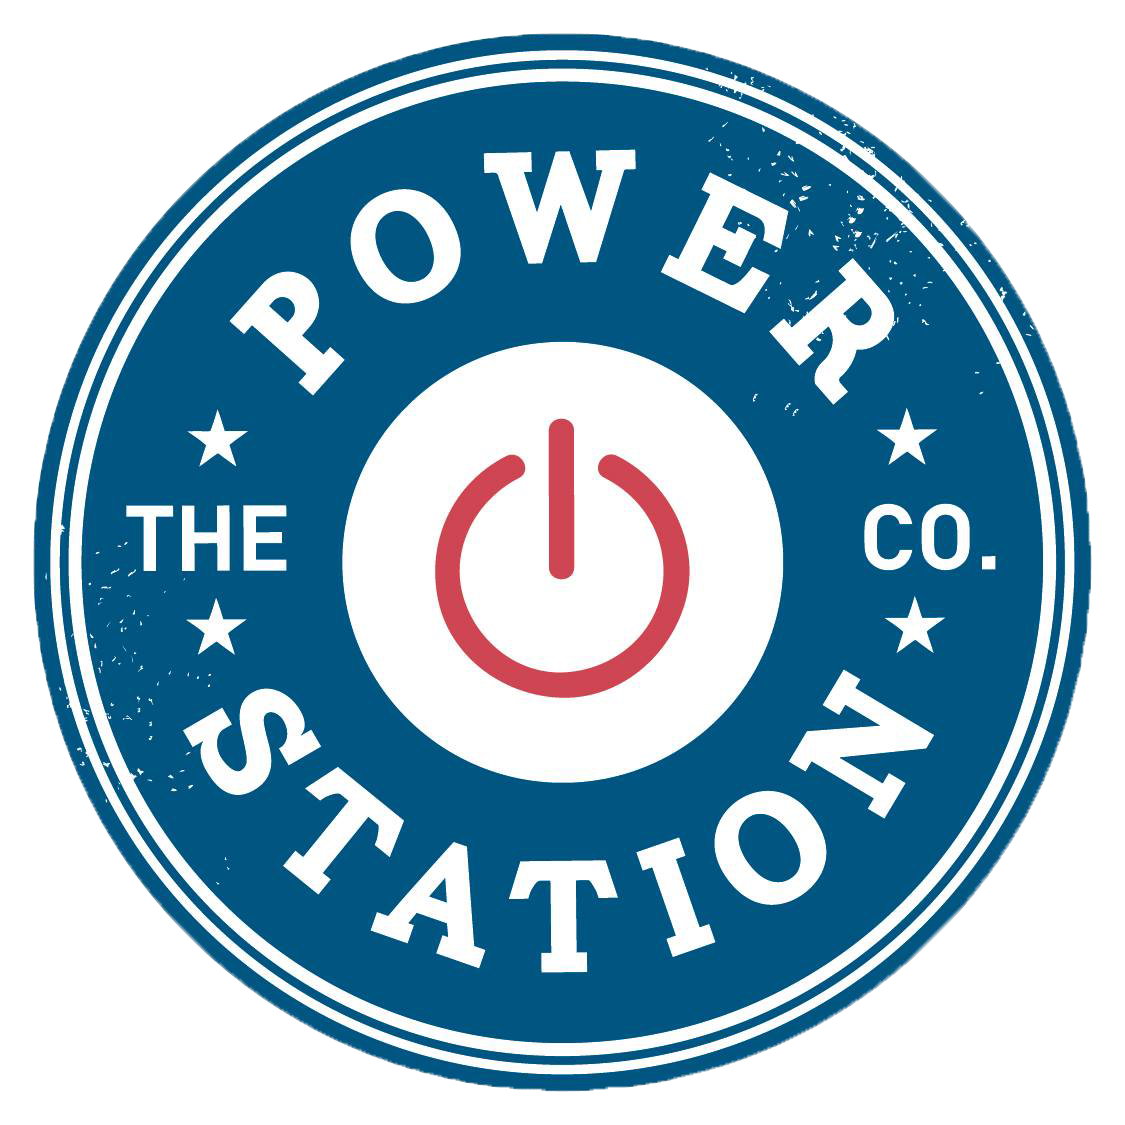 The Power Station CO